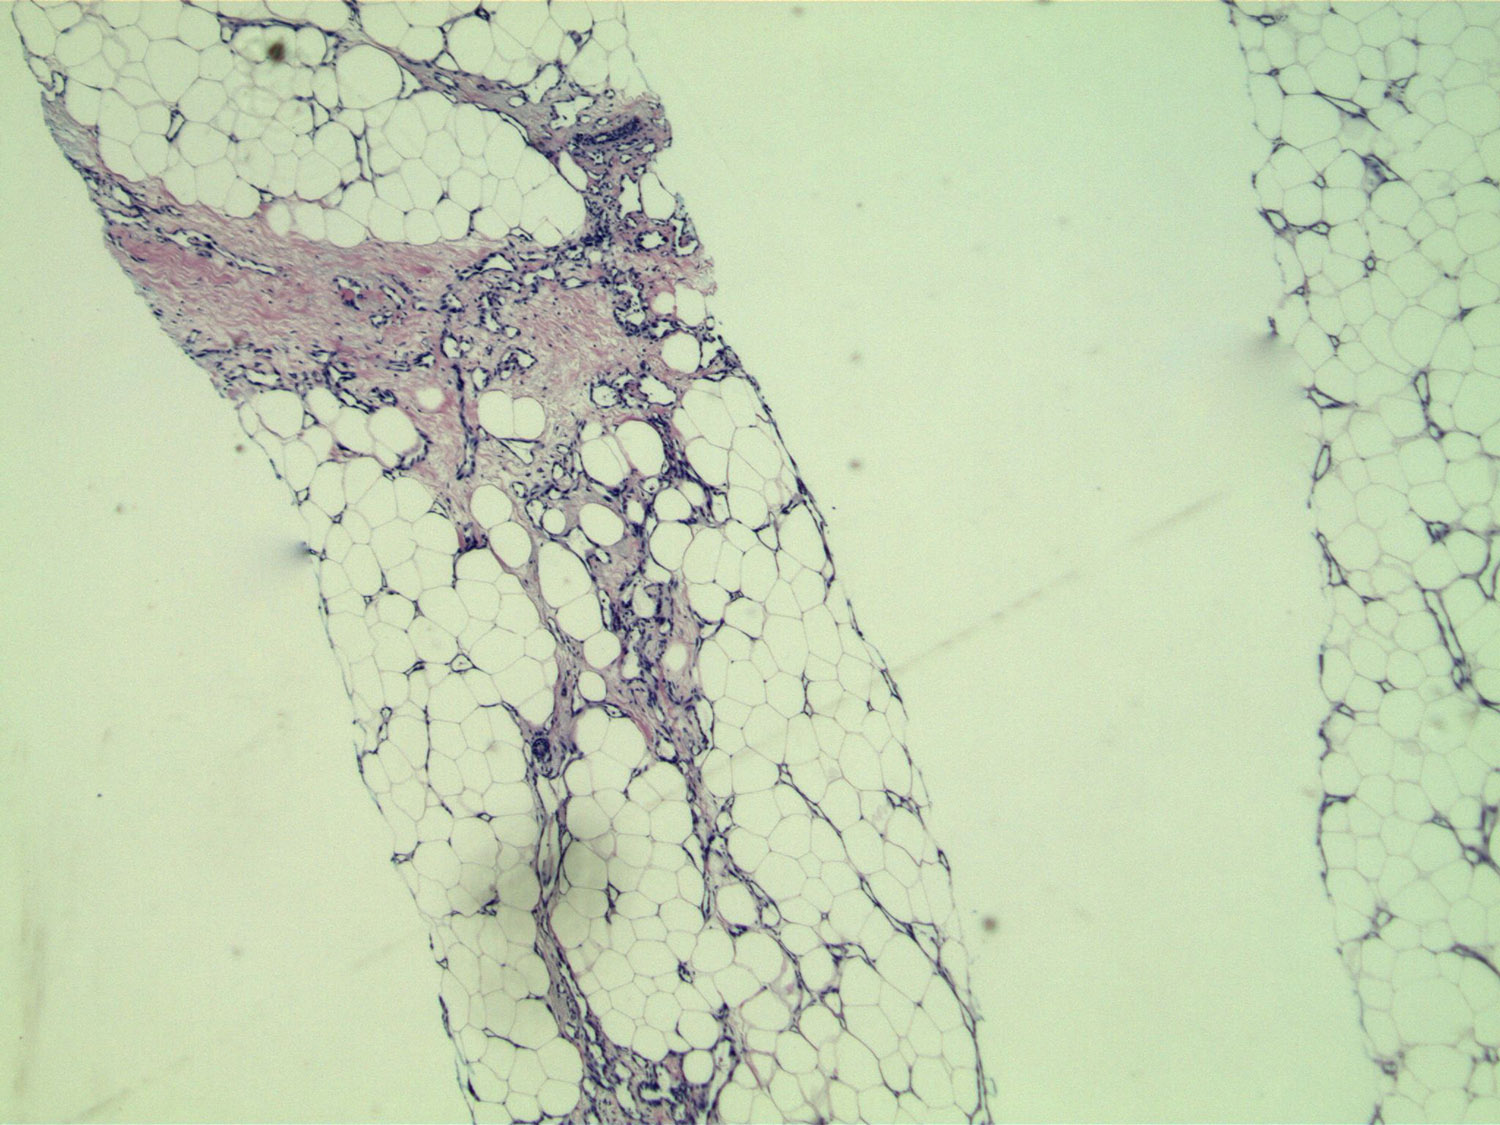 Image 1:  A low power magnification of two cores showing a vascular proliferation within fat and fibrous stroma.